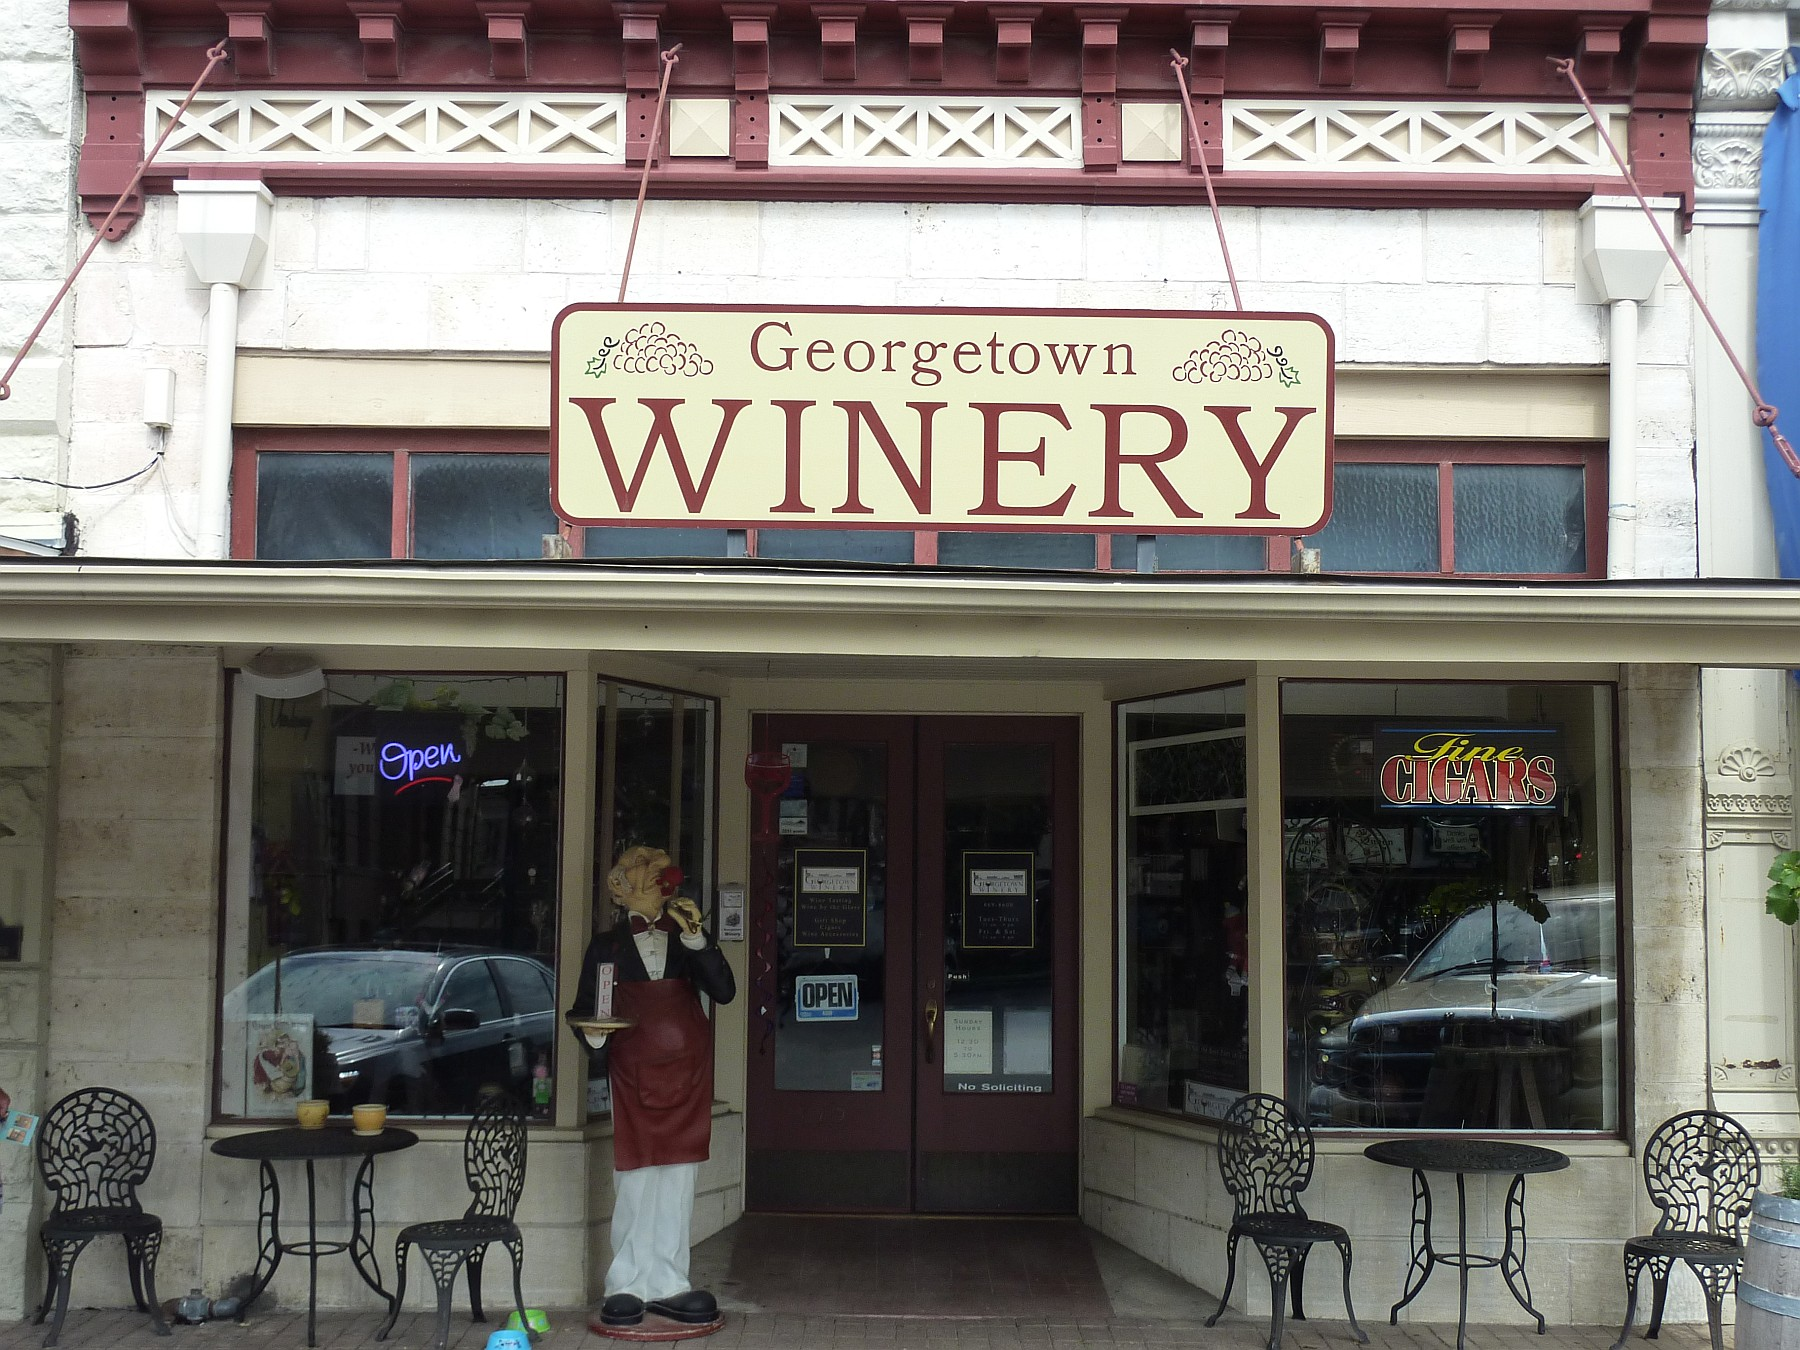 Georgetown Winery outside